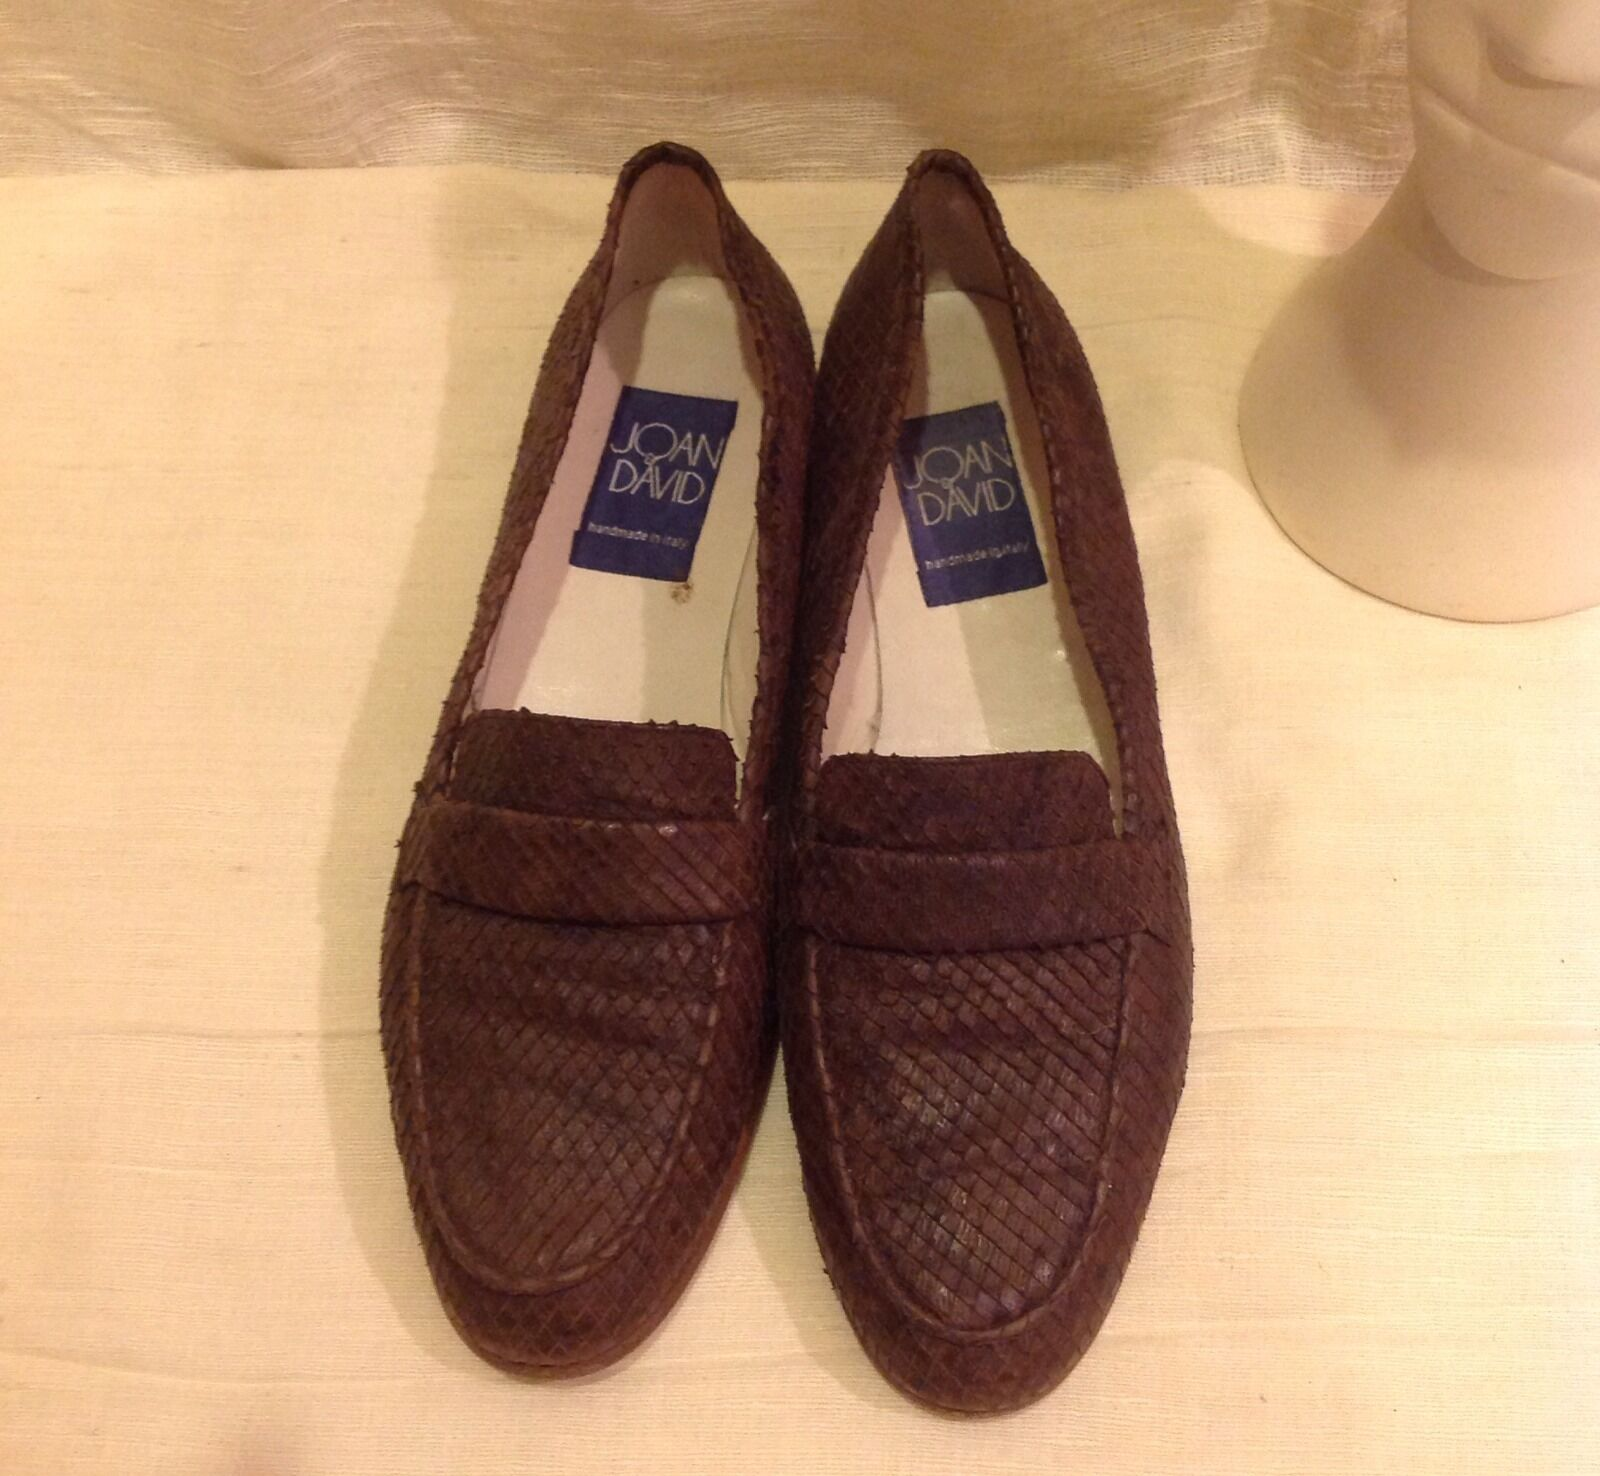 JOAN & DAVID LOAFERS Schuhe WOMEN SIZE 10B